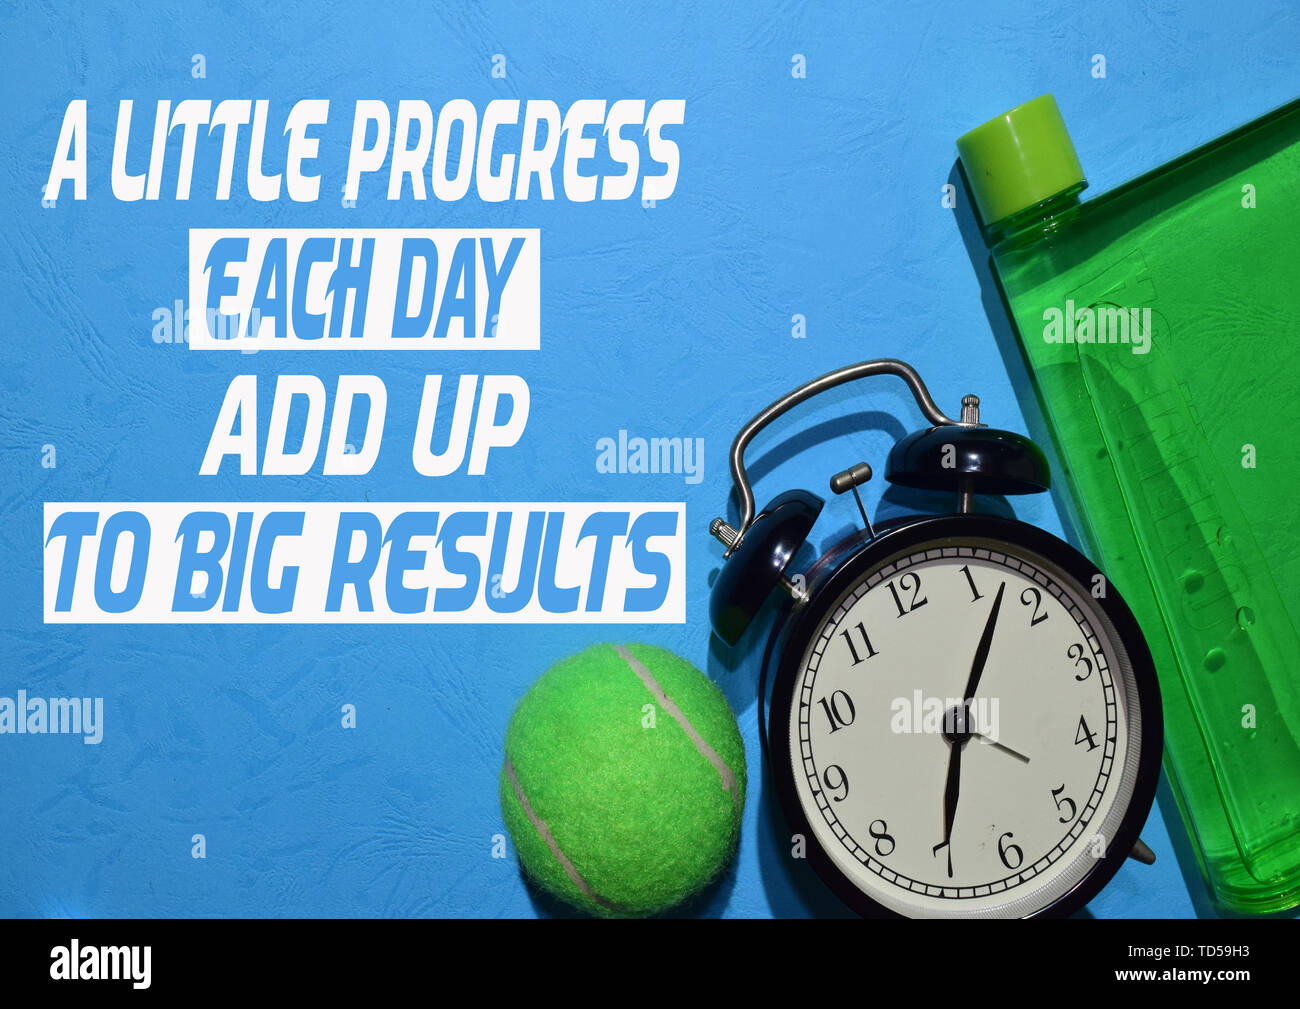 A Little Progress Each Day Add Up To Big Results Fitness Motivation Quotes Sport Concept Stock Photo Alamy